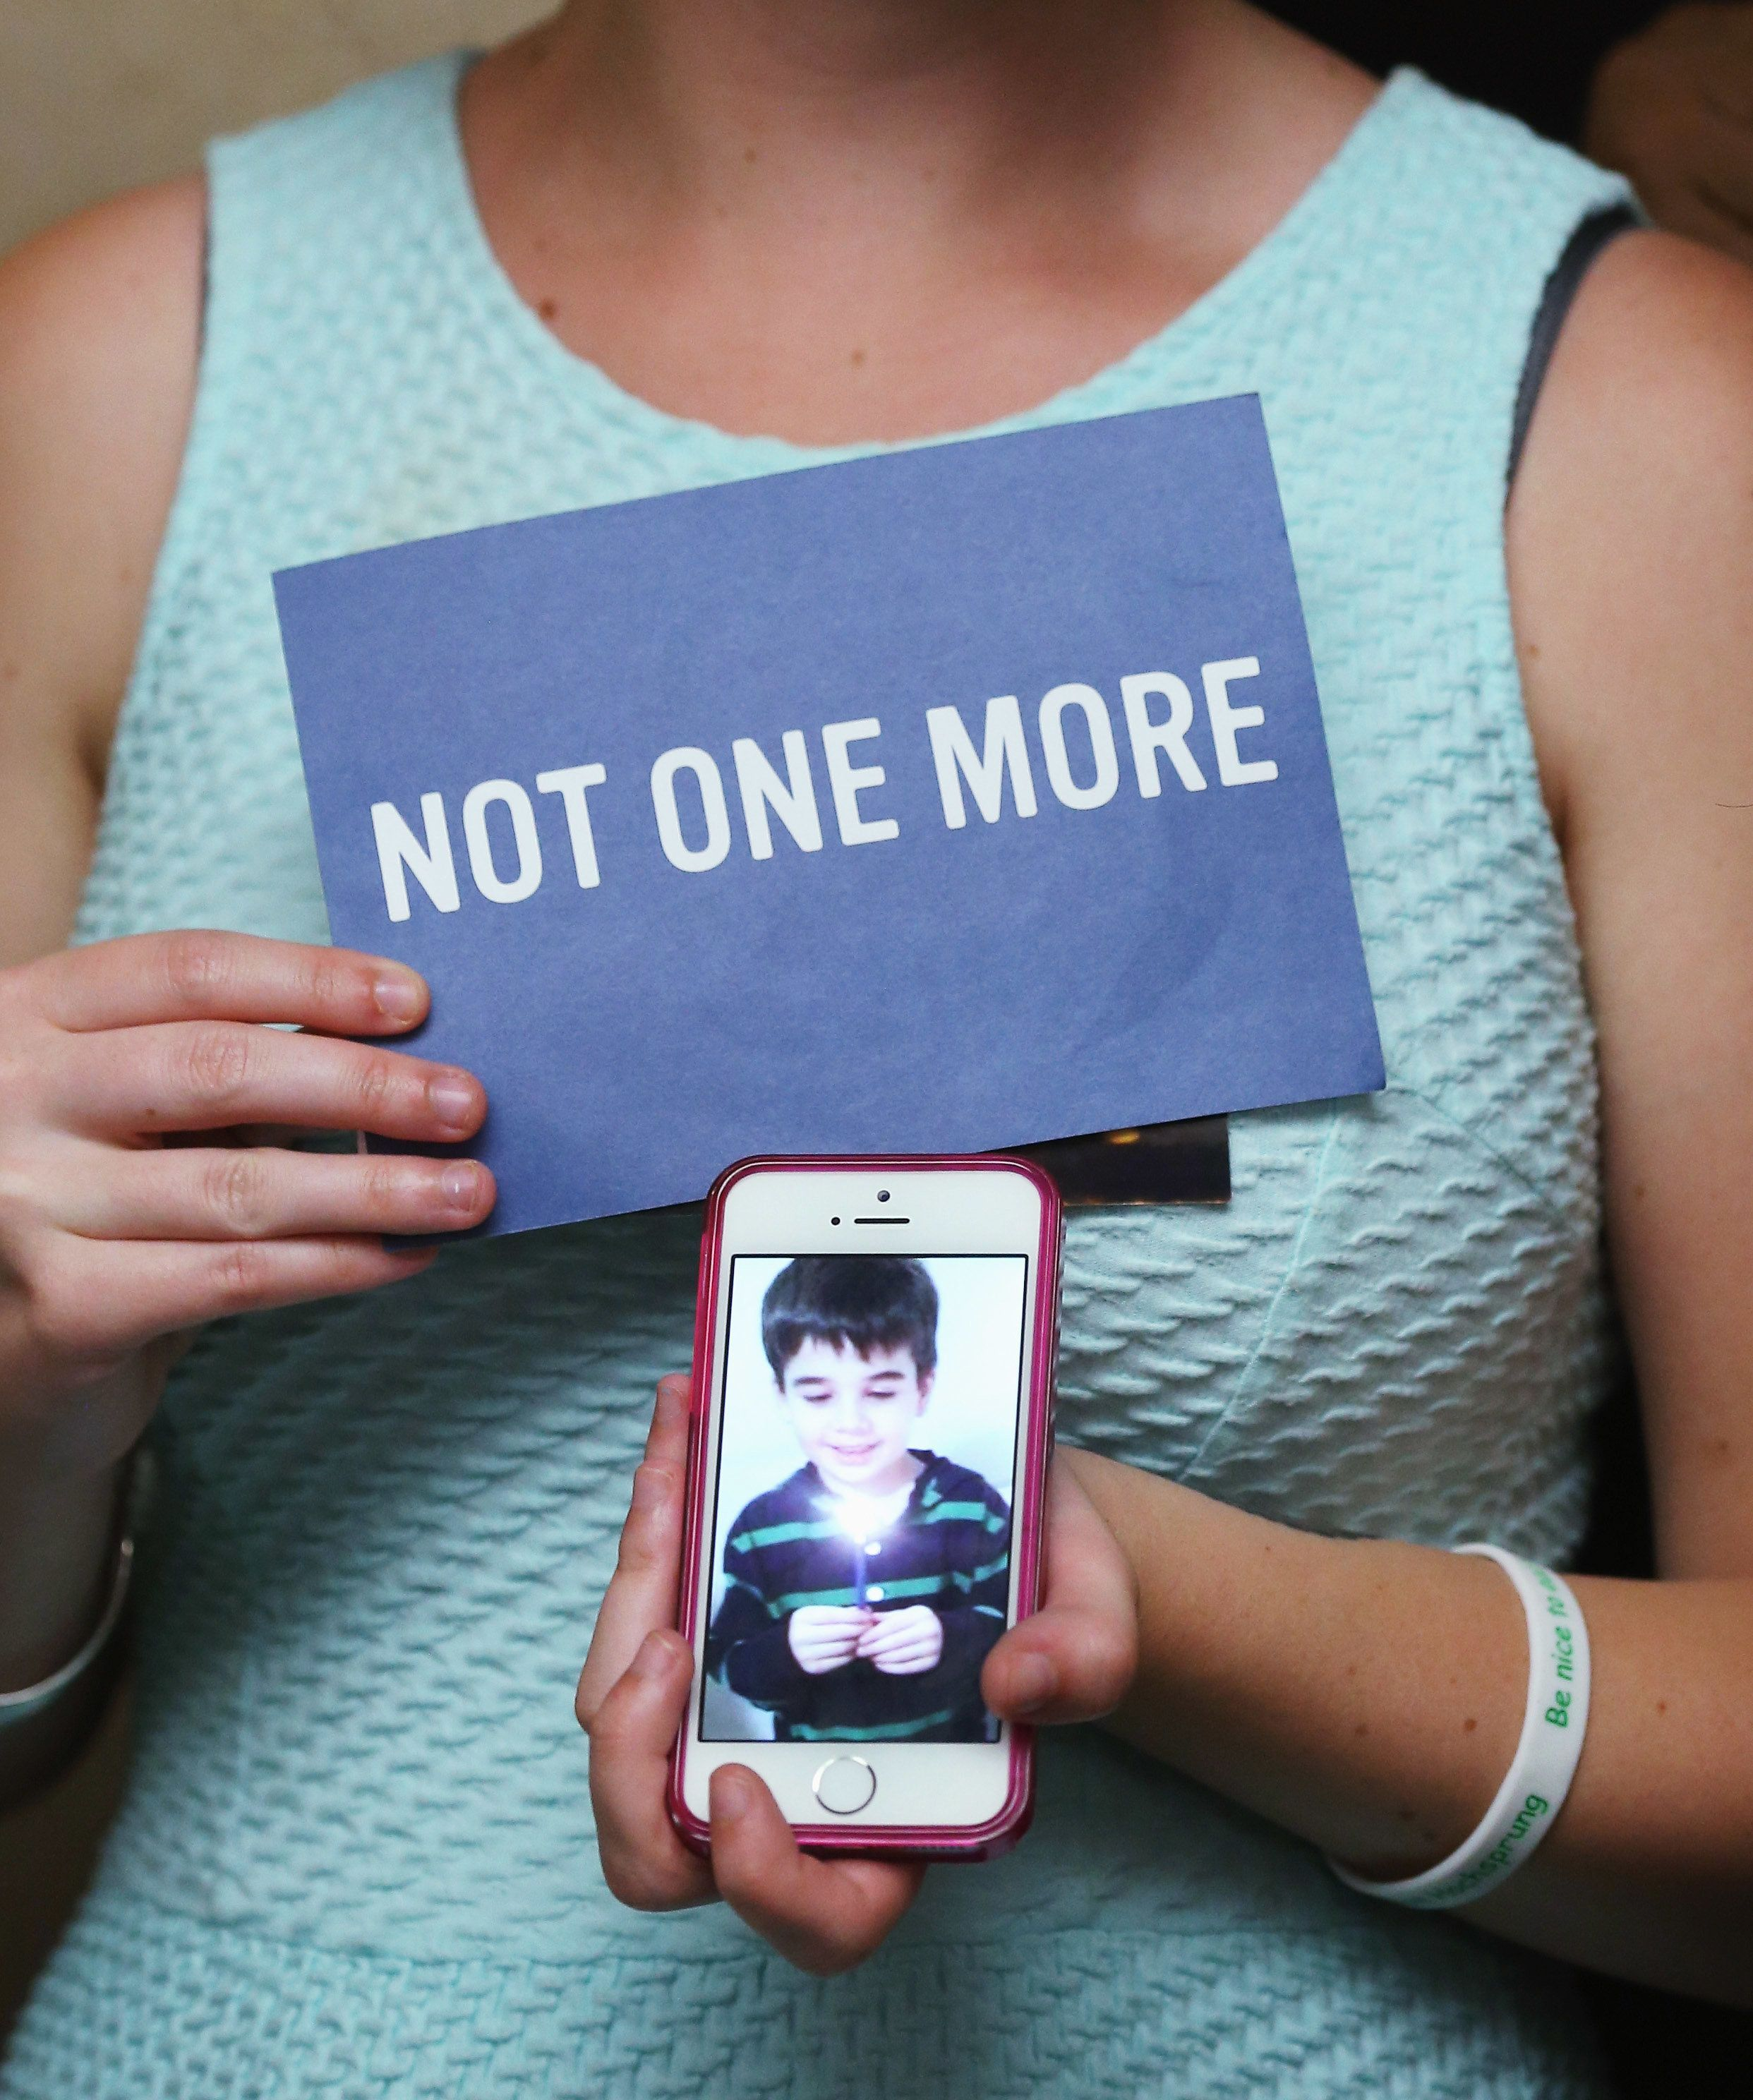 WASHINGTON, DC - JUNE 17: Danielle Vabner holds a image of her little brother Noah Pozner, who was shot and killed in the Newtown Connecticut. massacre, during a news conference on gun safety, on June 17, 2014 in Washington, DC. Family members of gun violence victims announced the ''Not One More' campaign urging Americans to call on Congress to pass better gun safety laws.   Photo by Mark Wilson/Getty Images)  (Photo by Mark Wilson/Getty Images)